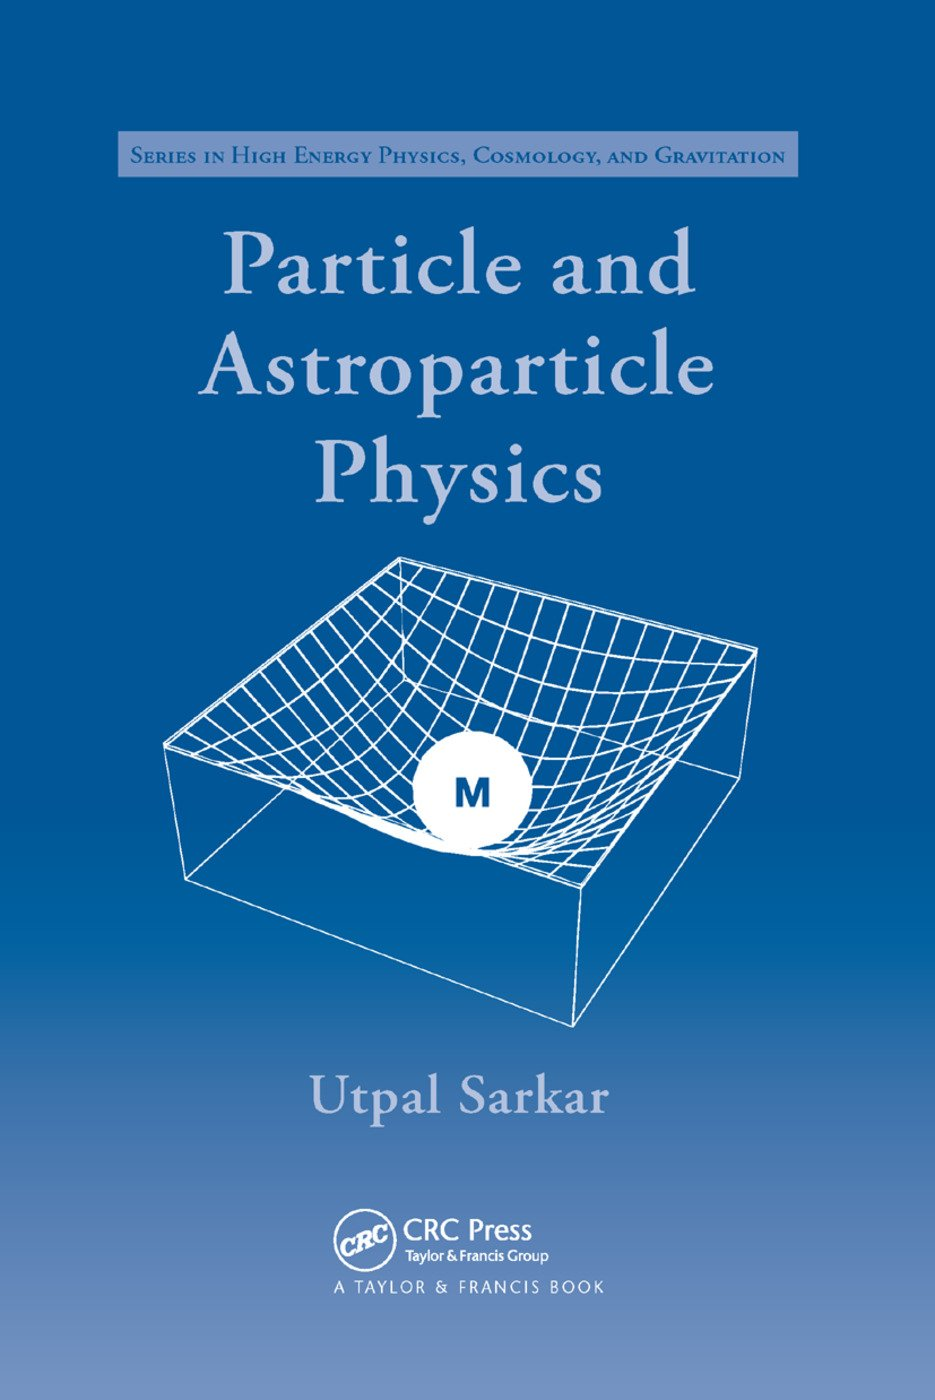 Particle and Astroparticle Physics: 1st Edition (Paperback) book cover